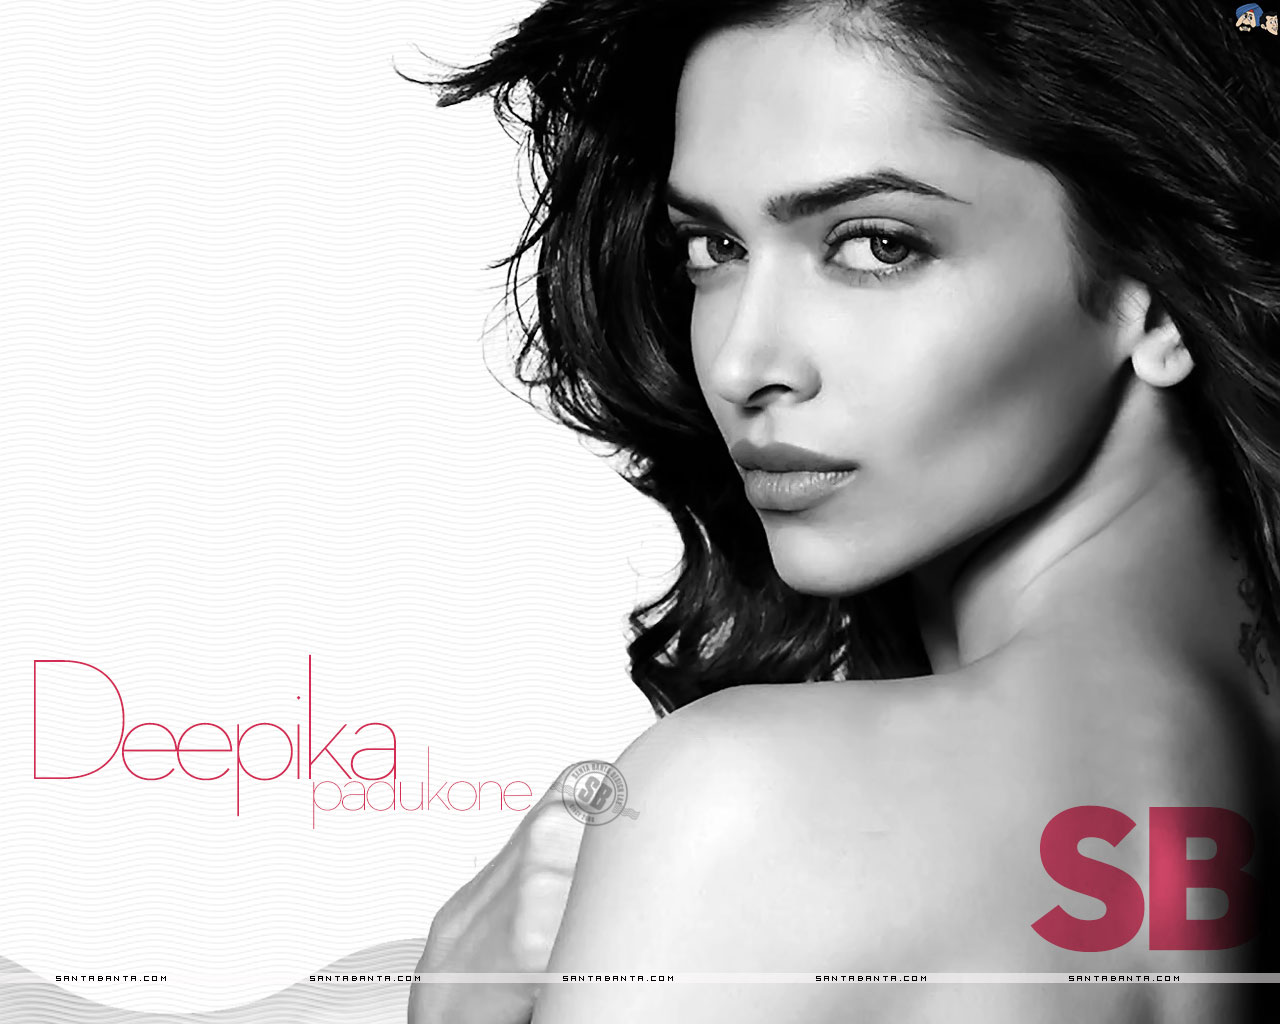 deepika padukone wallpapers sushmita sen lip kiss hq